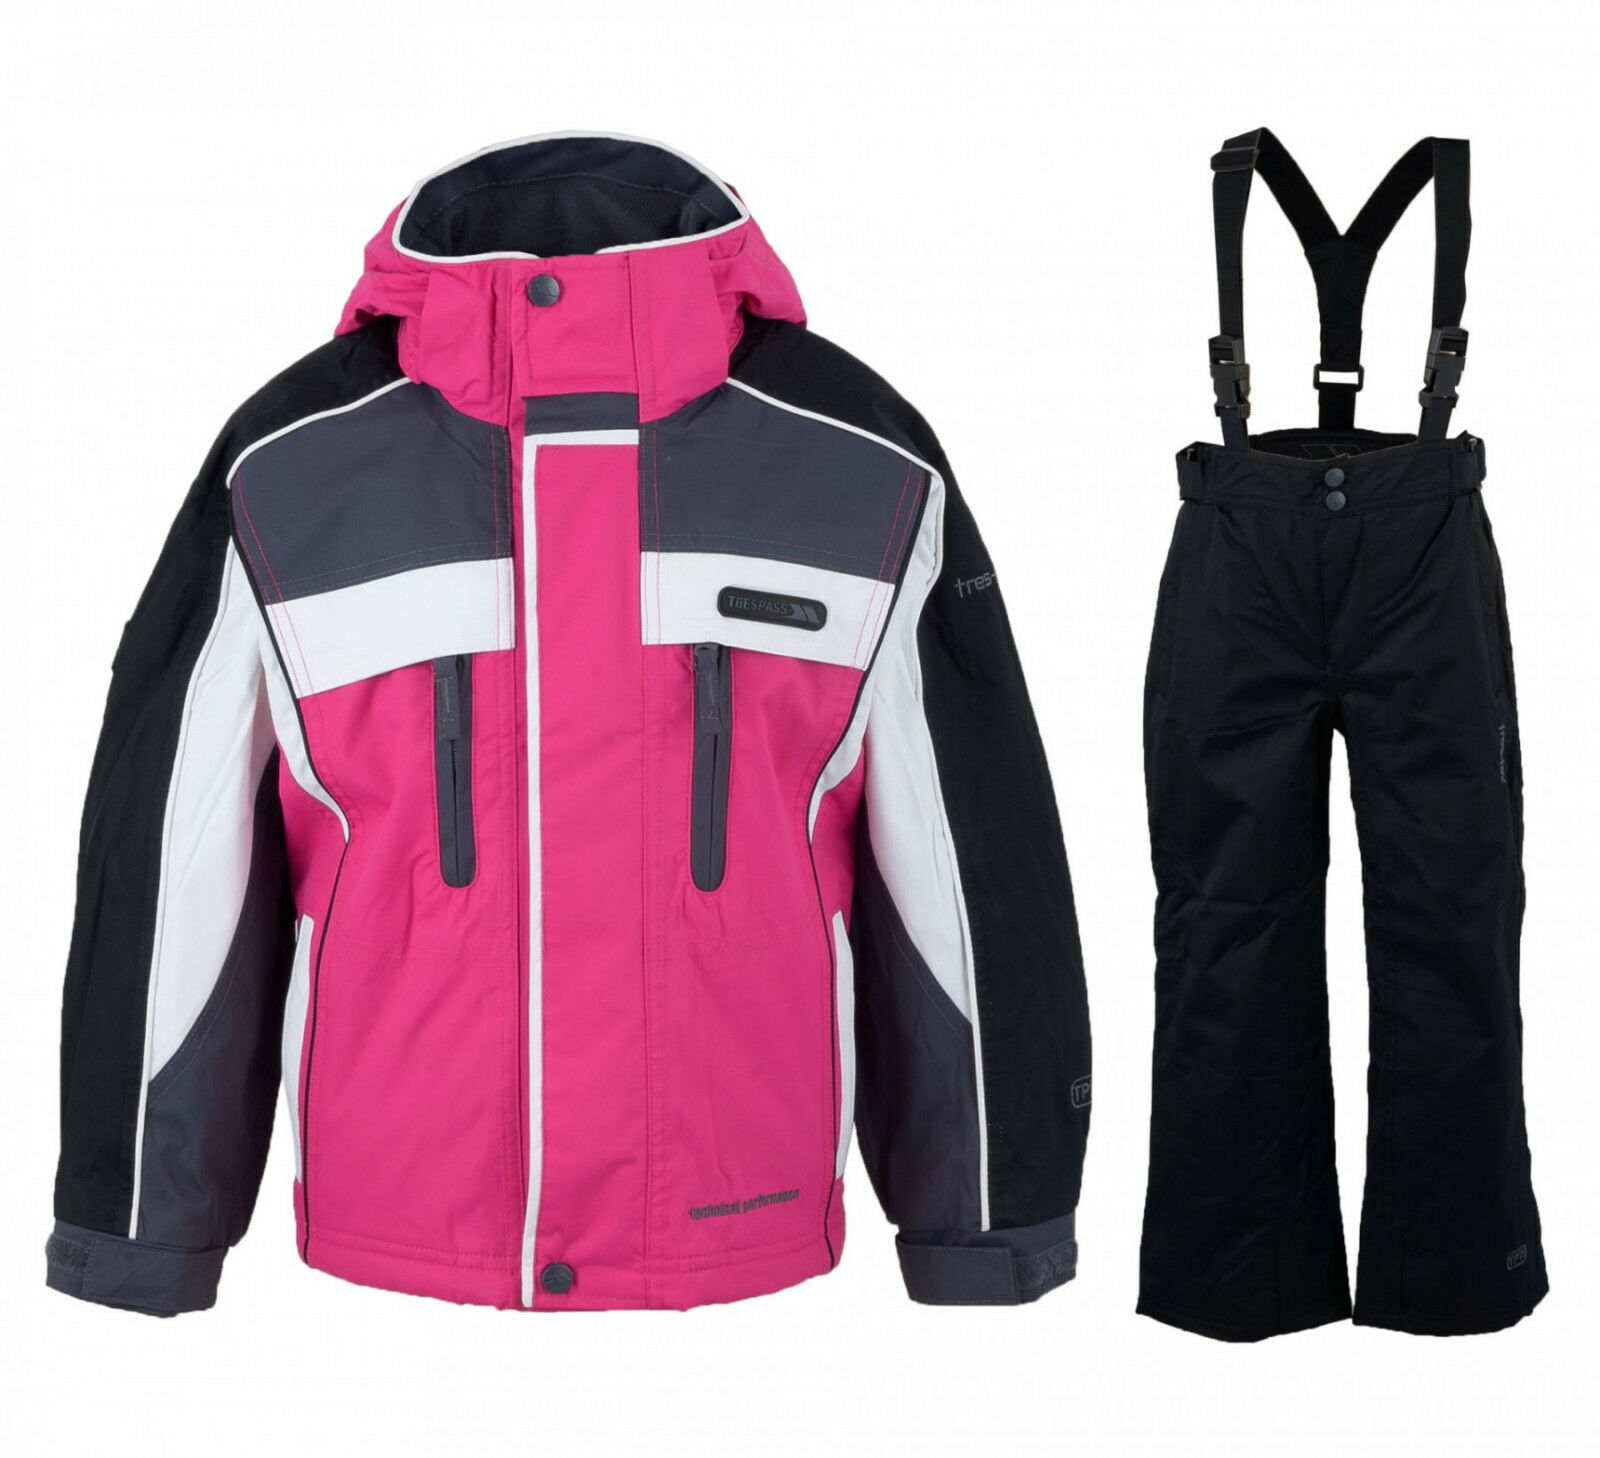 Trespass Sumaco Kids Ski Suit Padded Waterproof Boys  Girls All In One Set  outlet